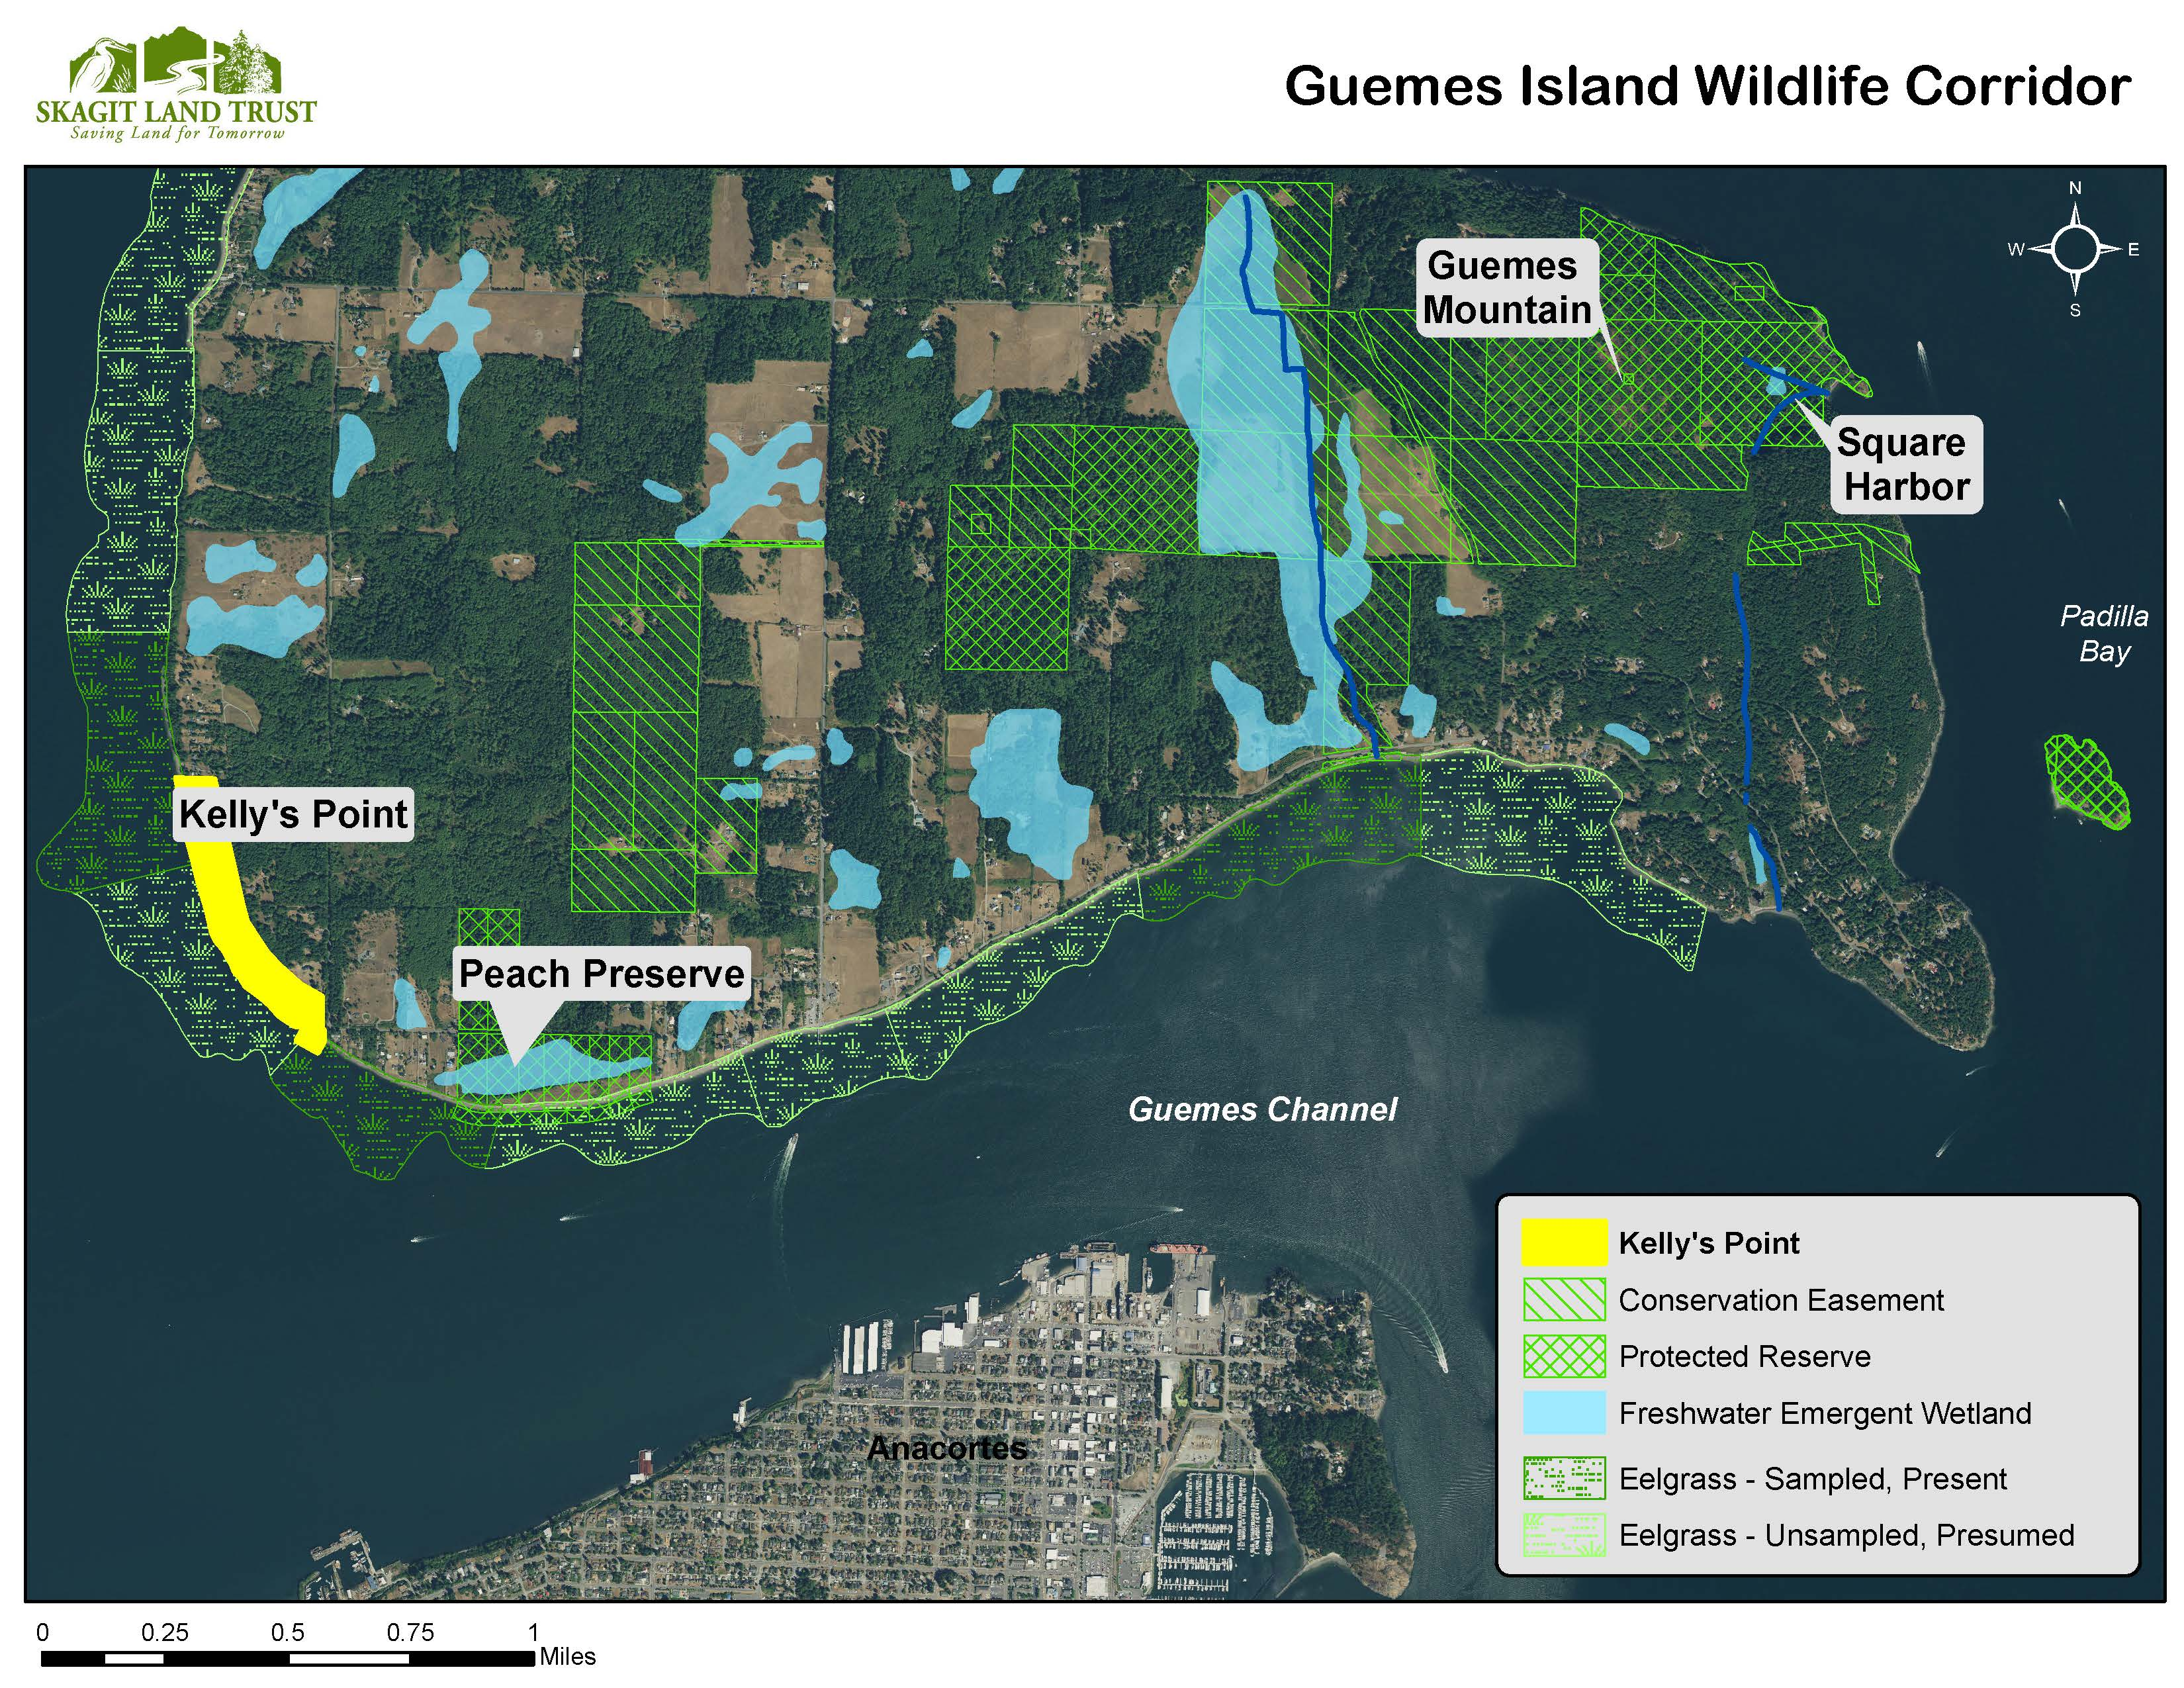 Map of conservation areas on Guemes Island, created by Skagit Land Trust staff.